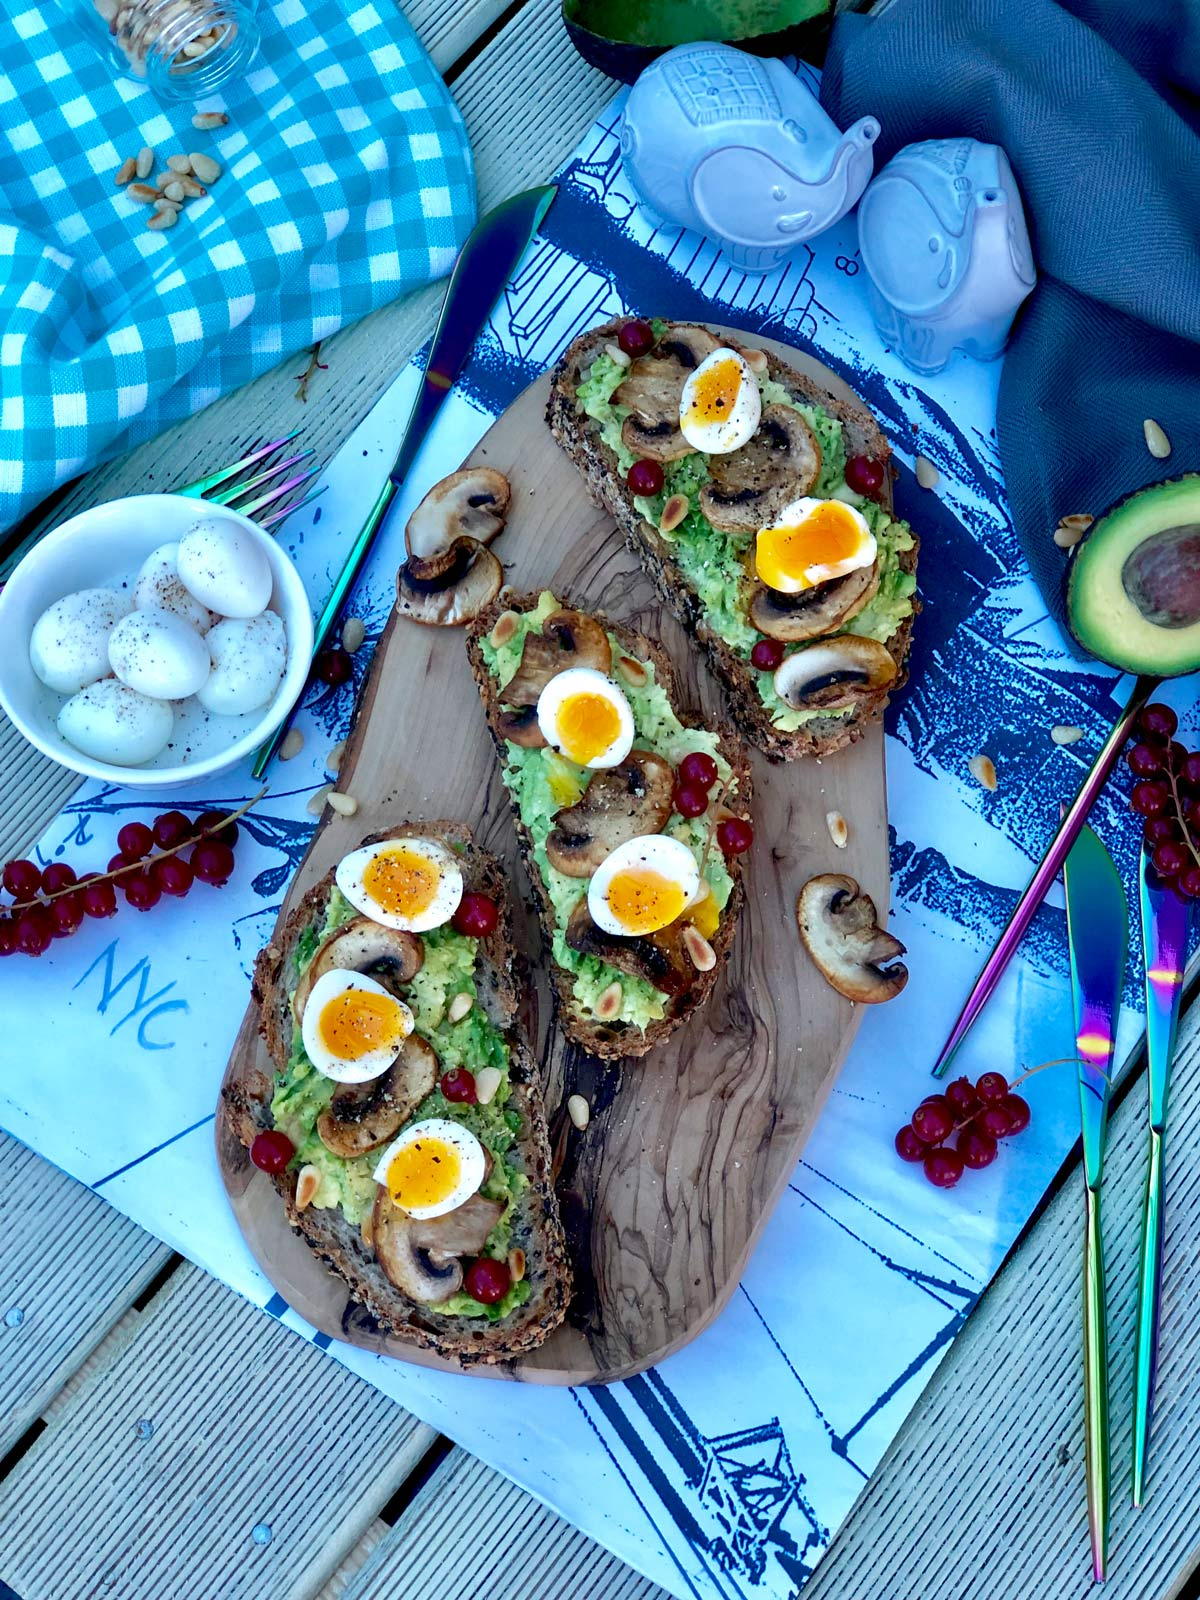 Soft boiled quail eggs, crushed avocado and red currants on seeded sourdough toast